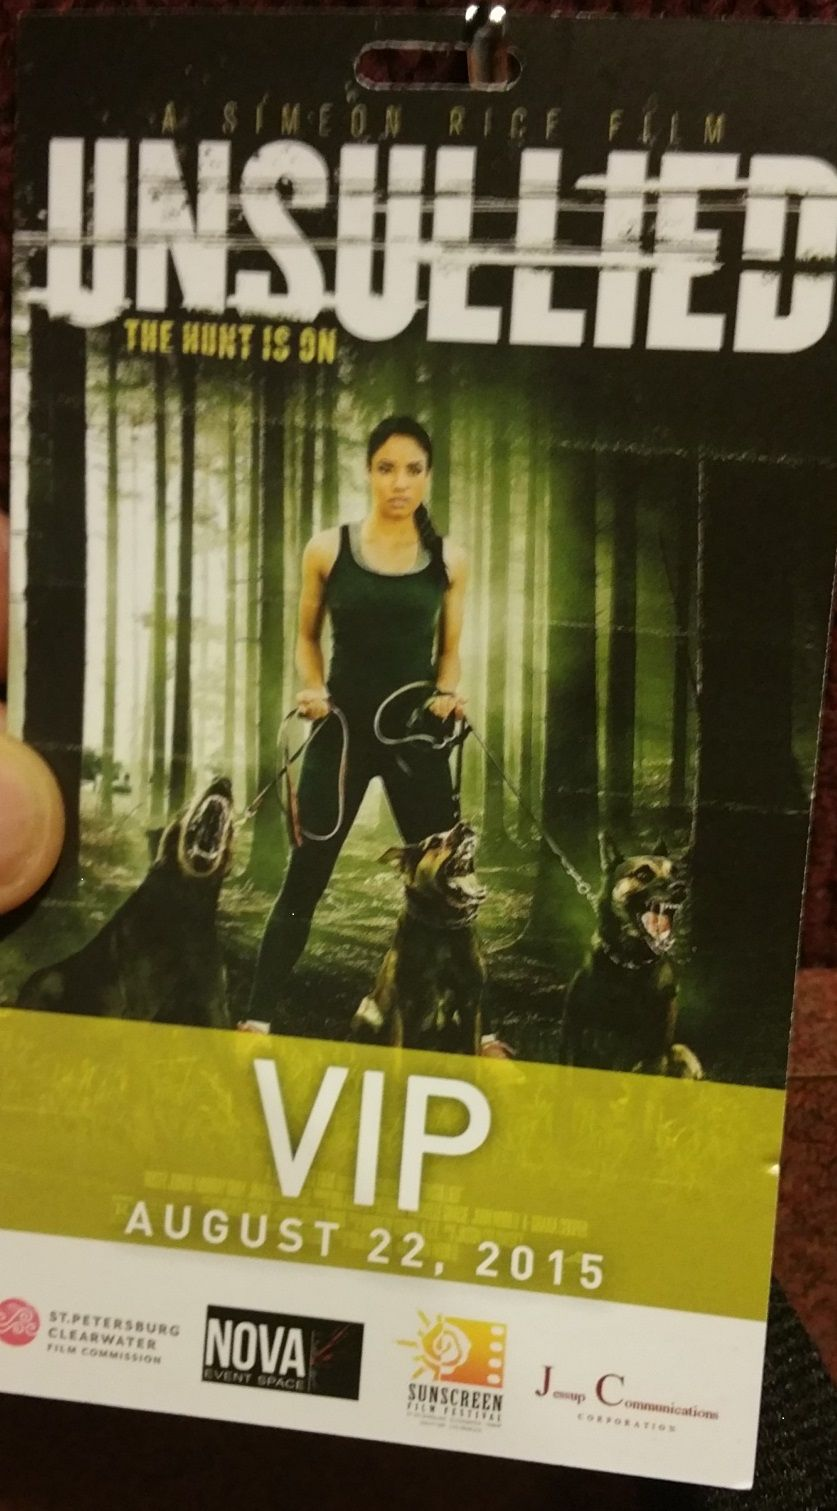 unsullied film vip pass